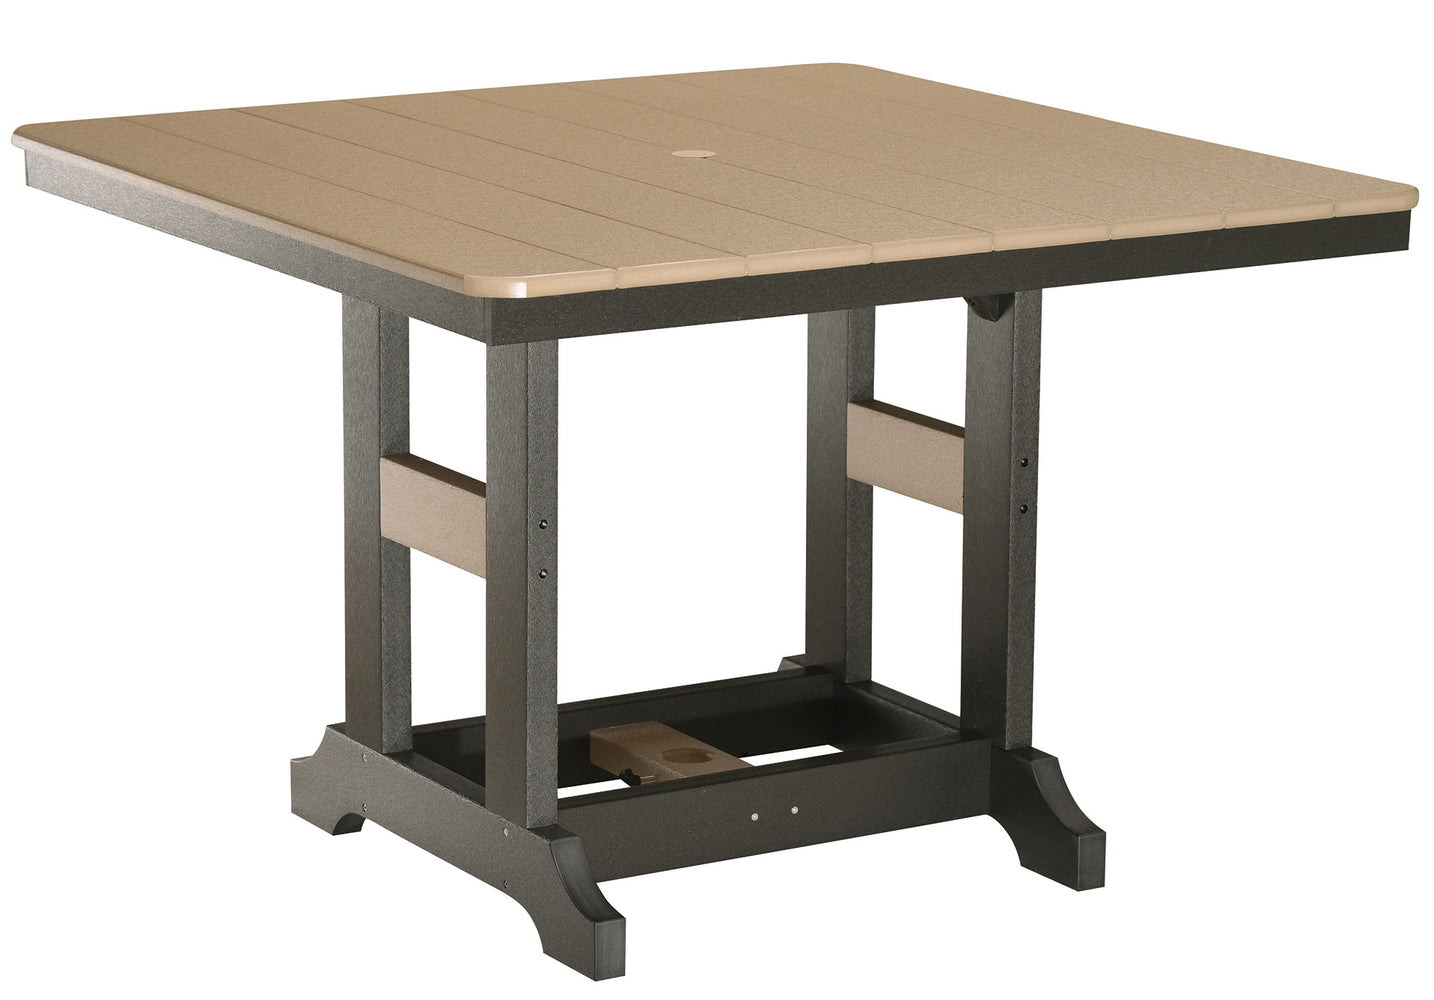 "Berlin Gardens Garden Classic 44"" Square Table - Dining Height"